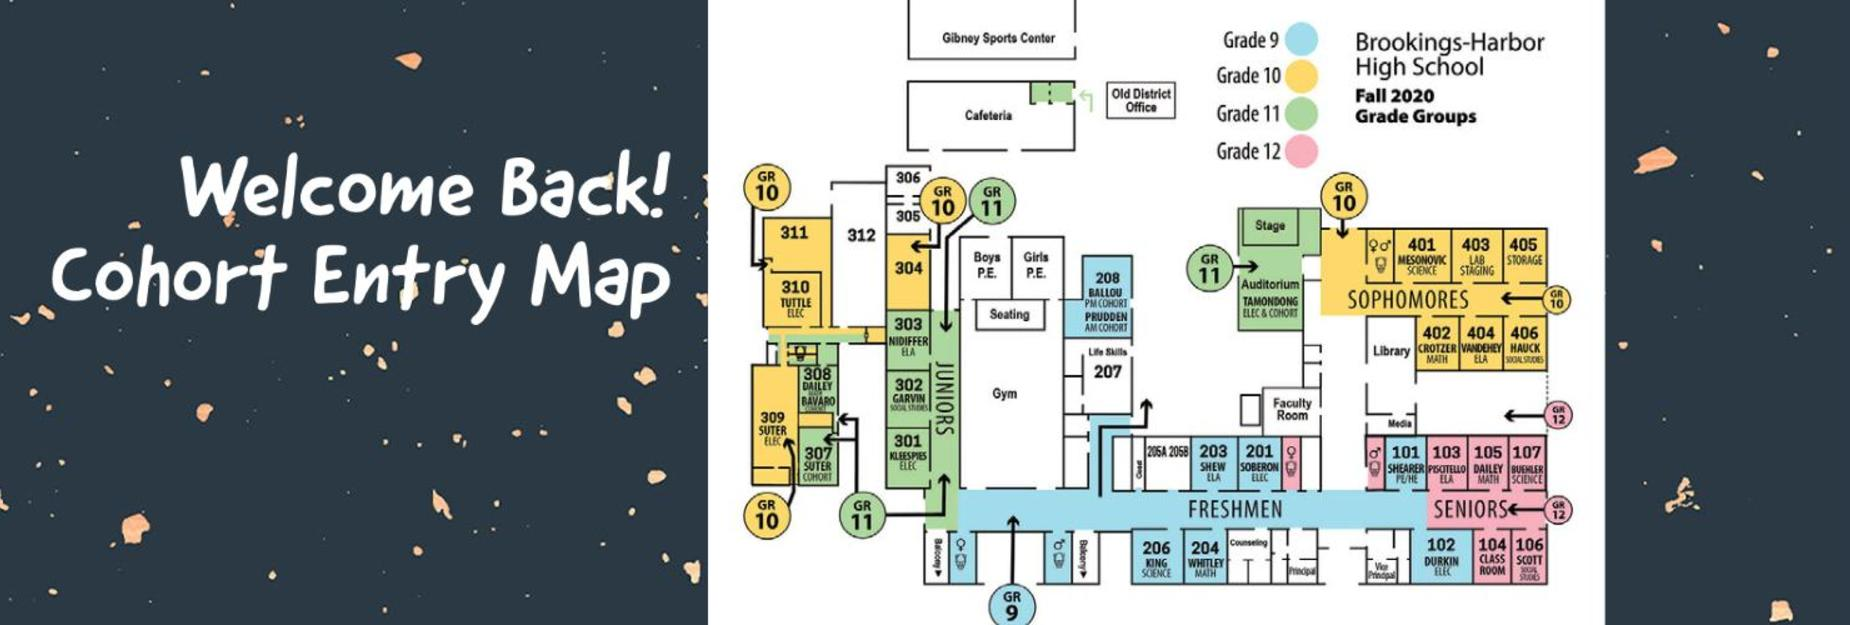 BHHS entry map